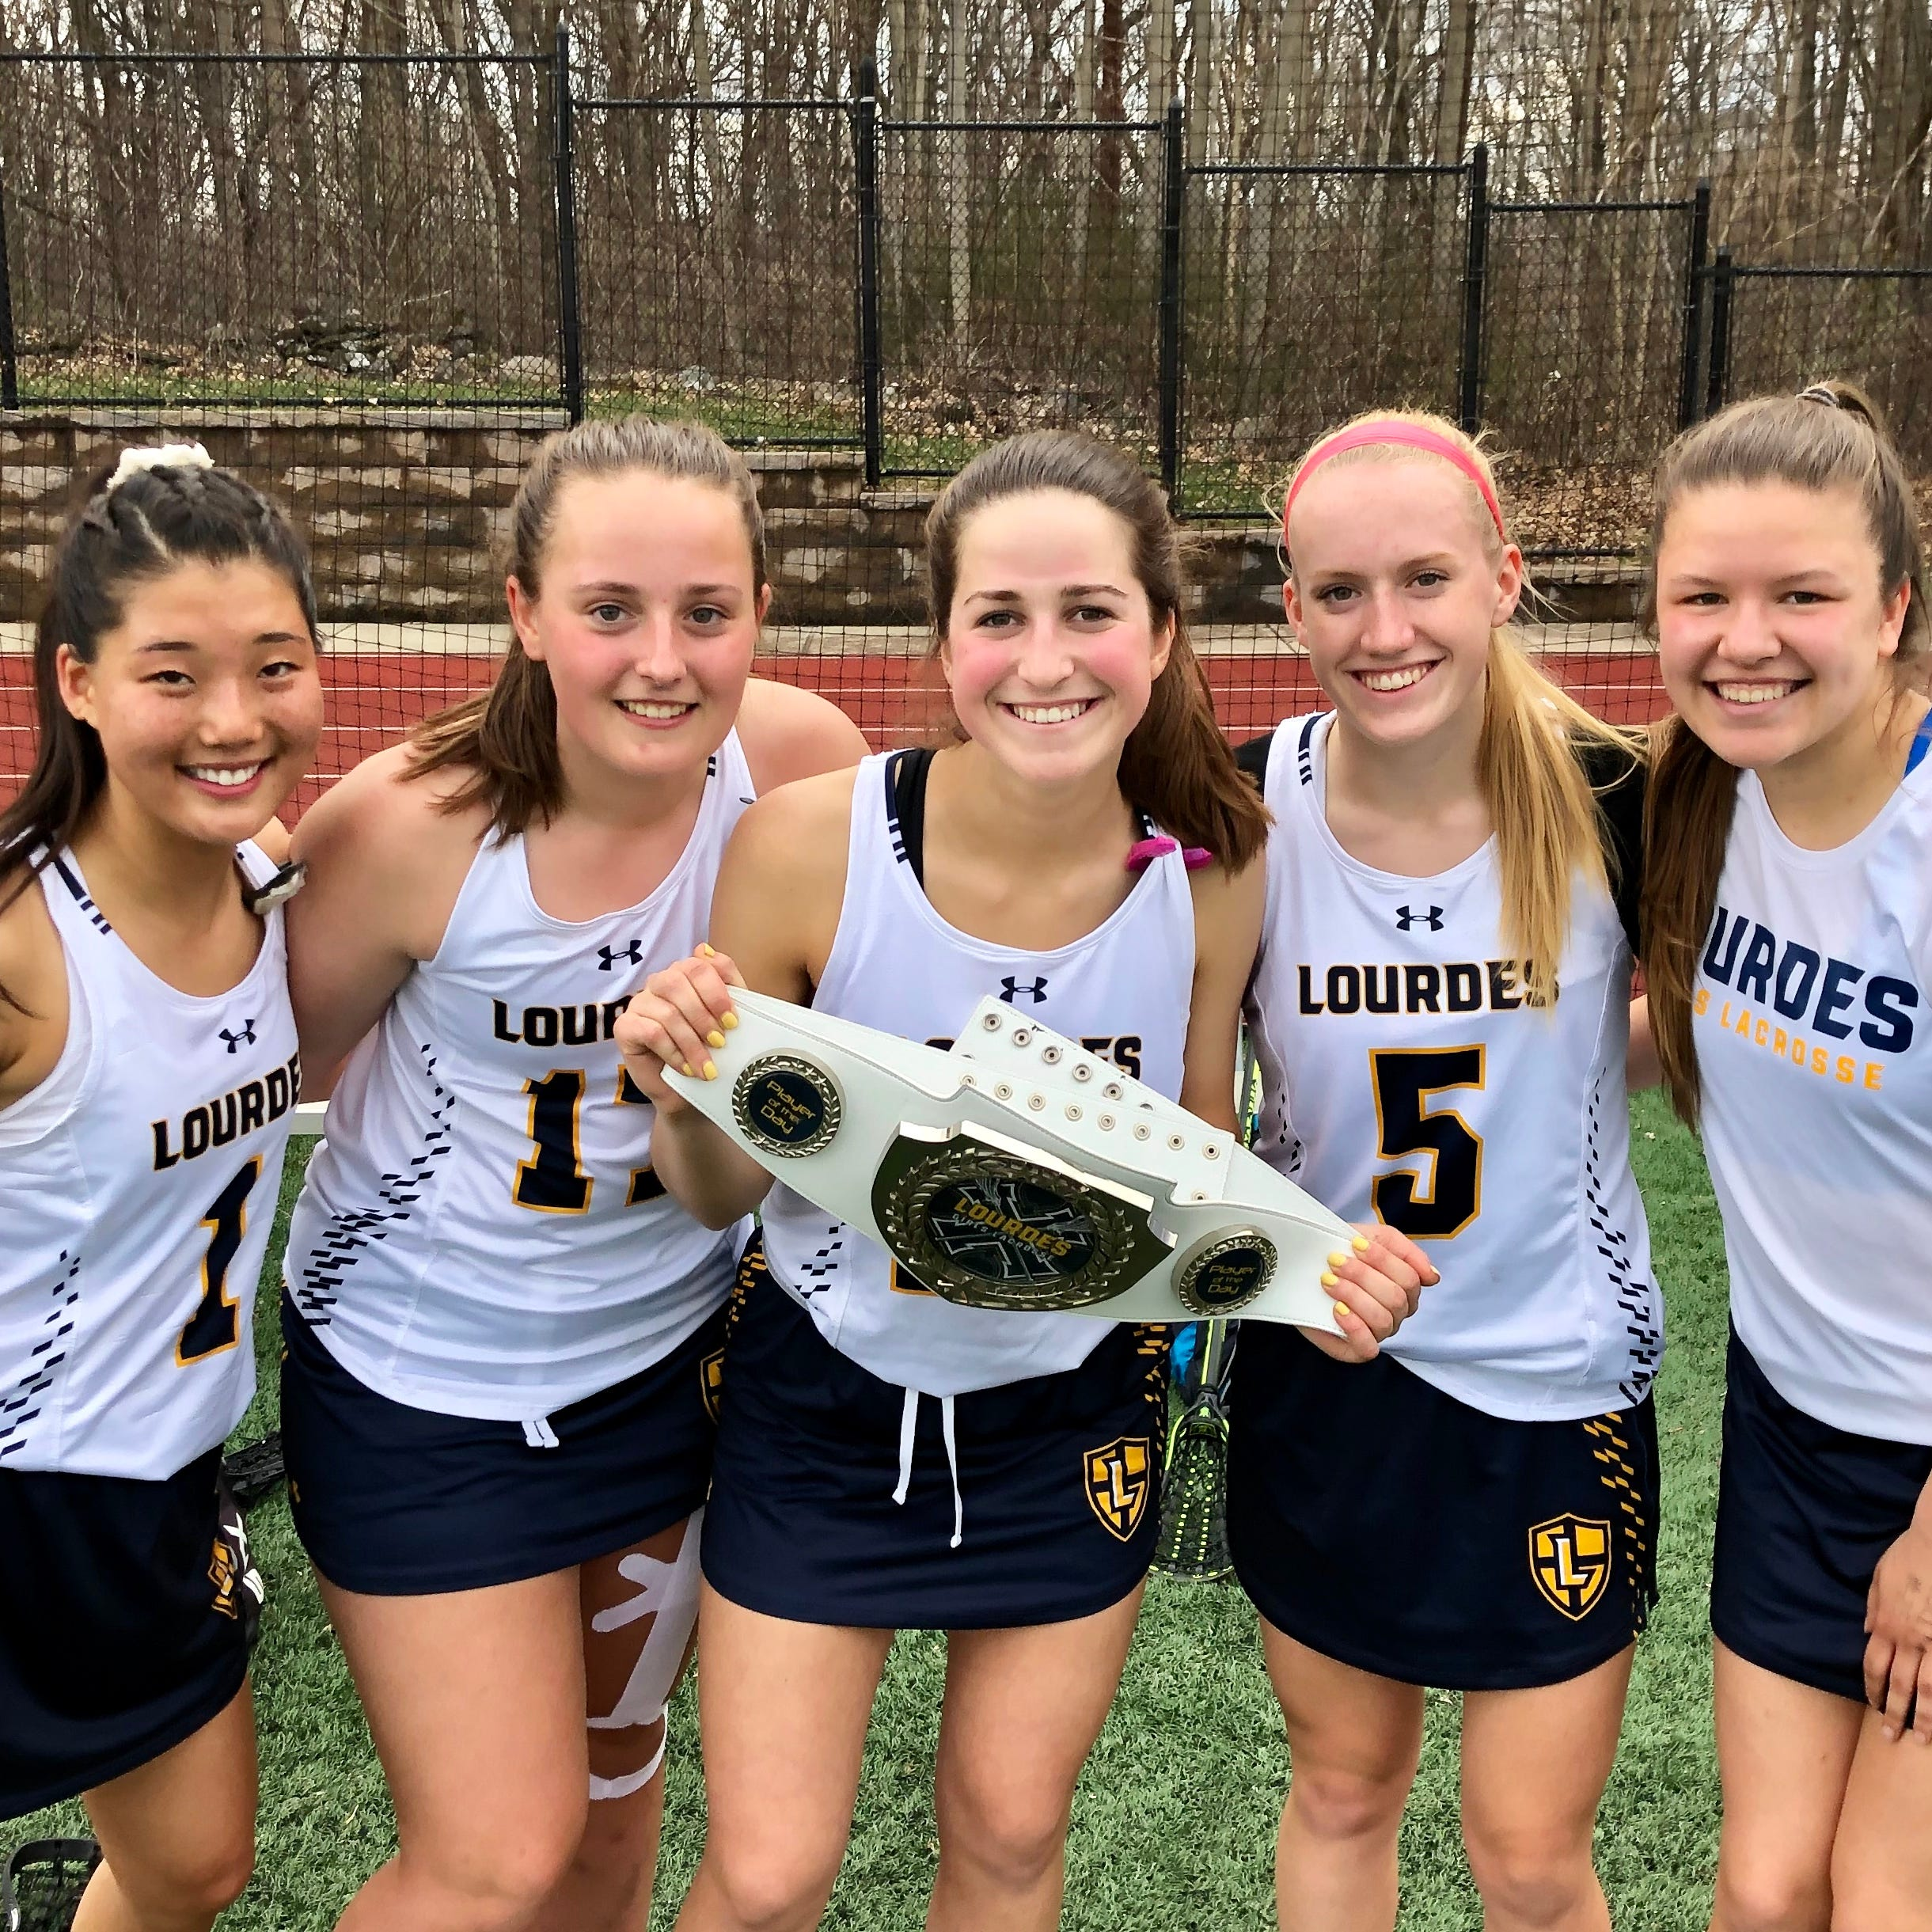 Siegrist's basketball-to-lacrosse transition is a fast break for Lourdes